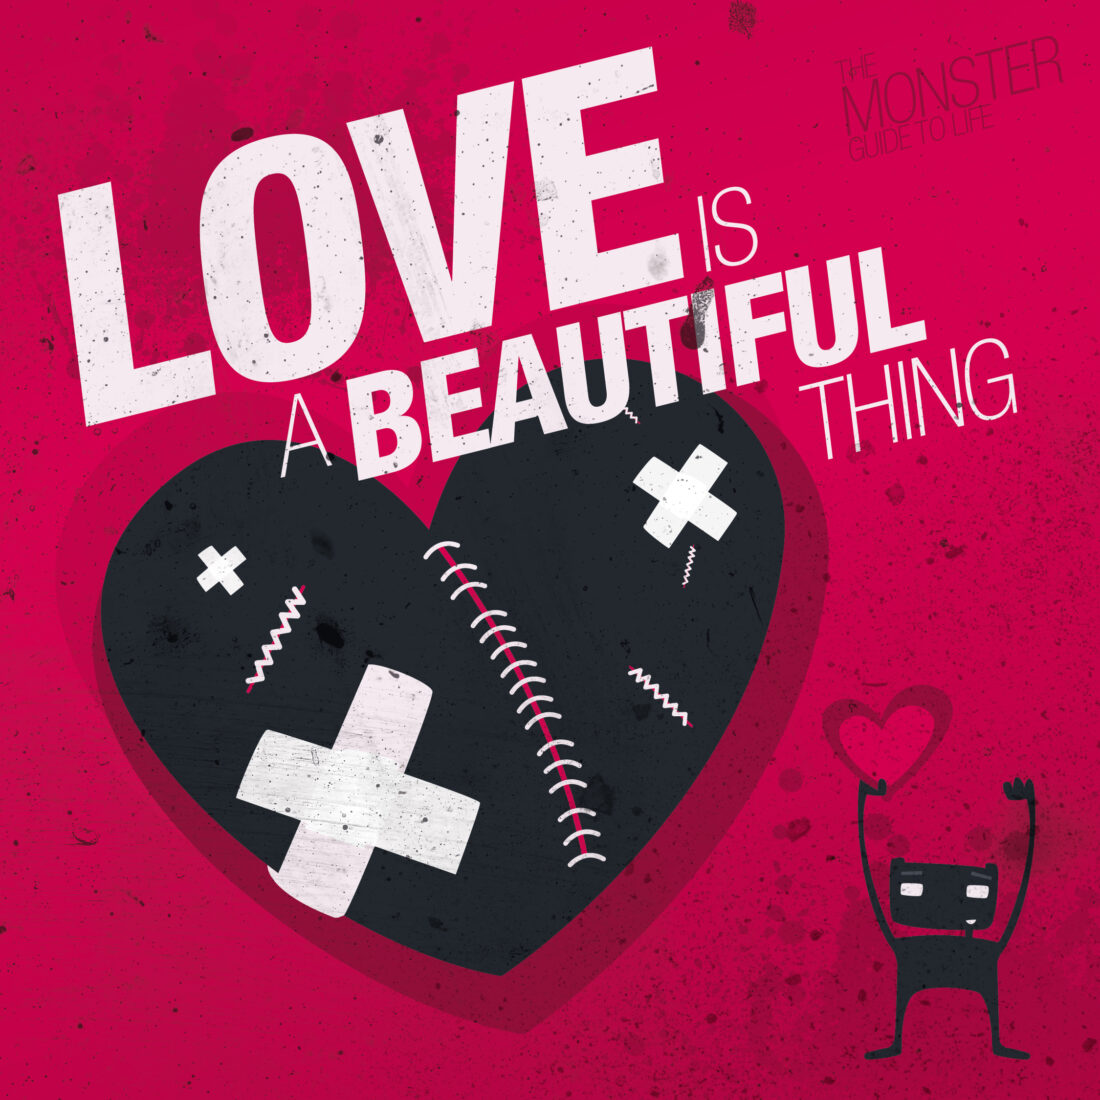 Love is a beautiful thing illustration